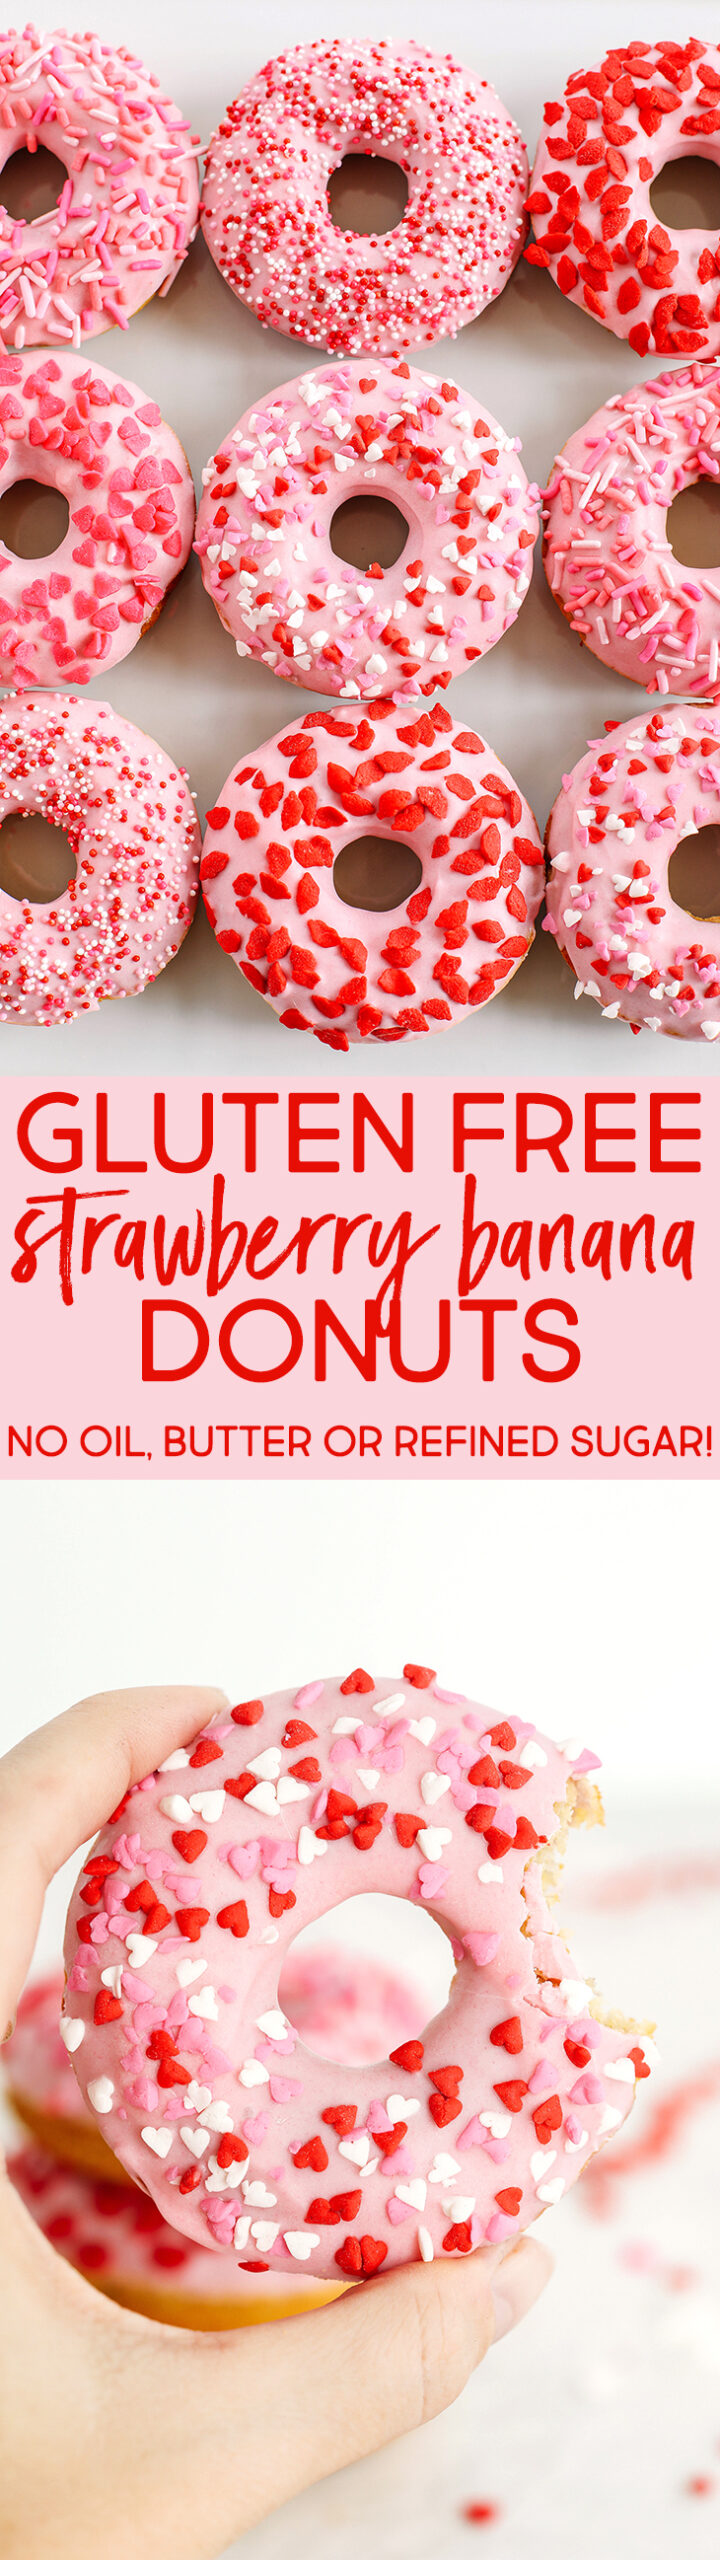 Delicious Gluten-Free Strawberry Banana Donuts that are soft, lightly sweetened with honey and baked, not fried, with zero oil or butter for the perfect Valentine's Day treat!